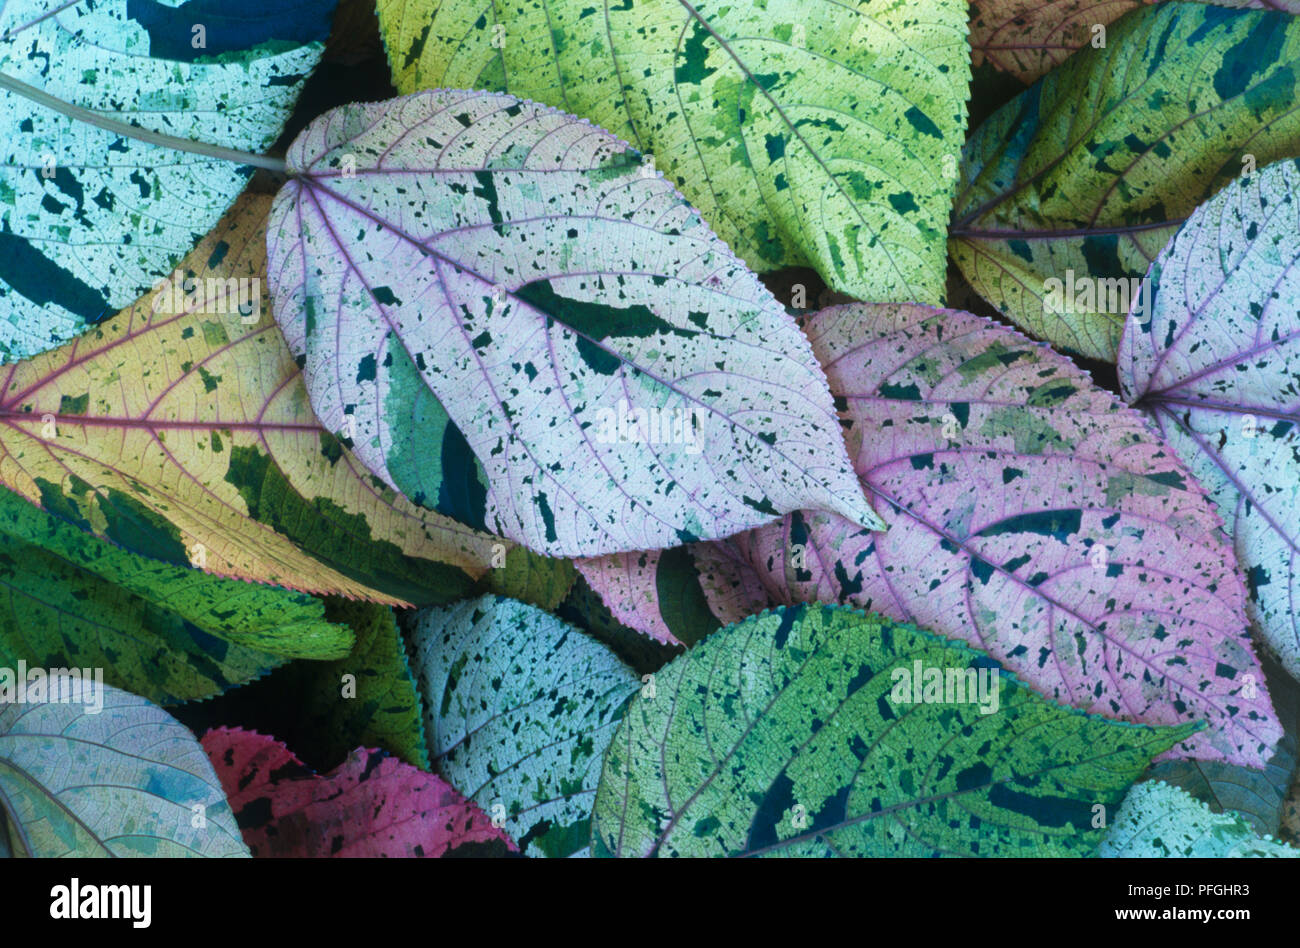 Acalypha Wilkesiana Stock Photos Acalypha Wilkesiana Stock Images